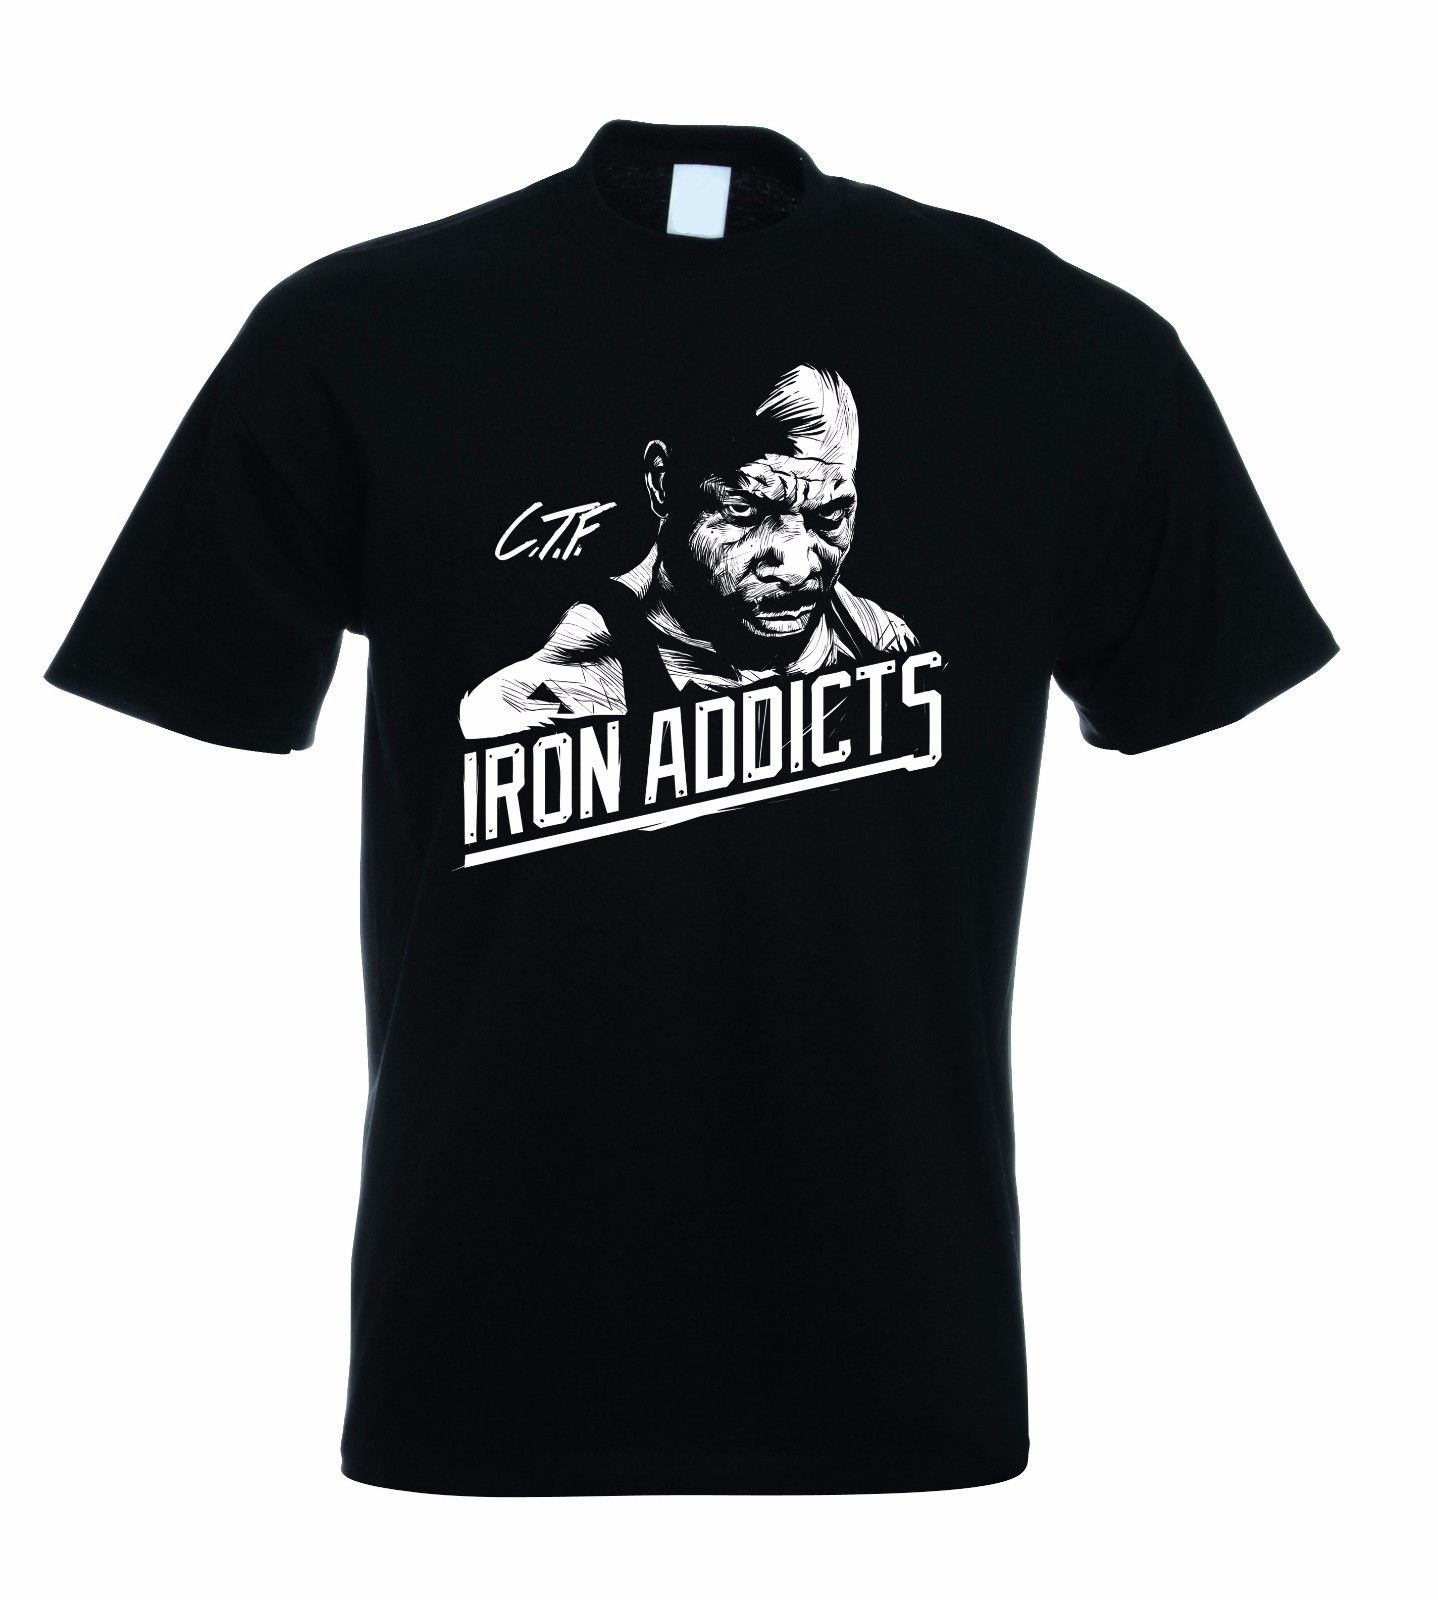 CT FLETCHER IRON ADDICTS T SHIRT GYMER BODYBUILDING MMA 100% Cotton T-Shirts for Man Top Tee 2018 New Arrival Men